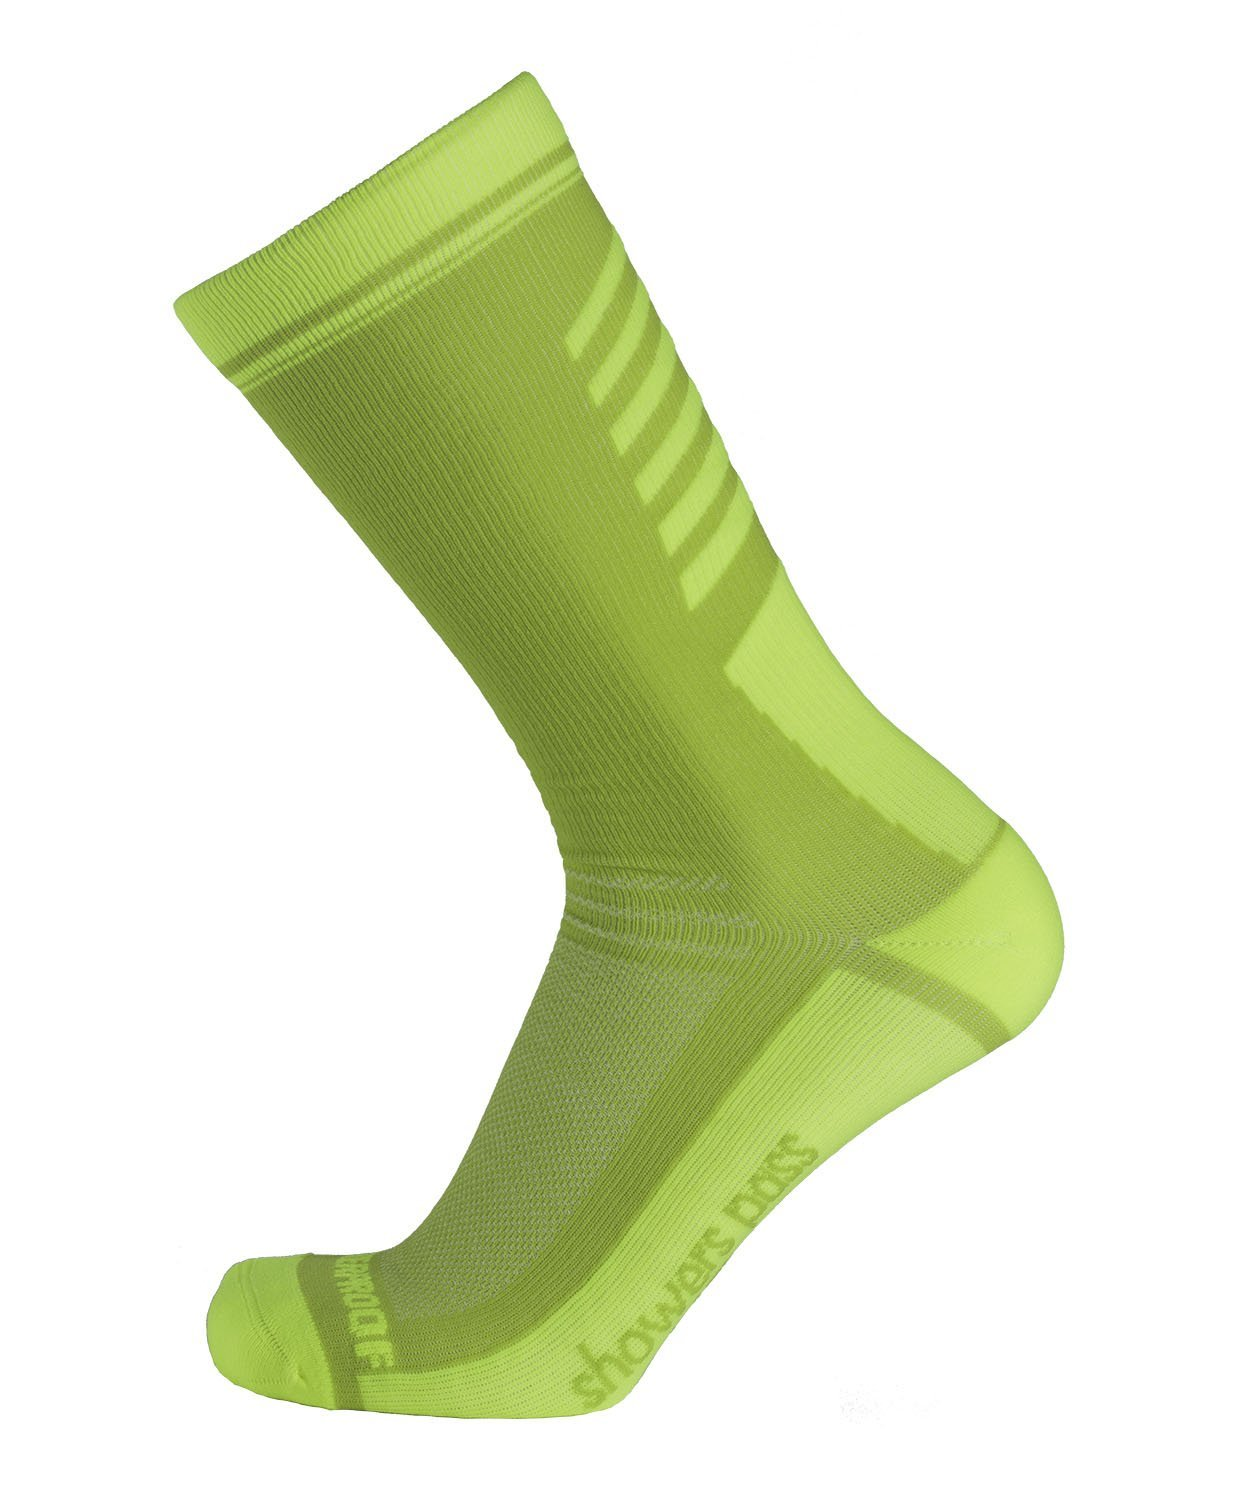 Lightweight Waterproof Socks - Crosspoint Neon by Showers Pass